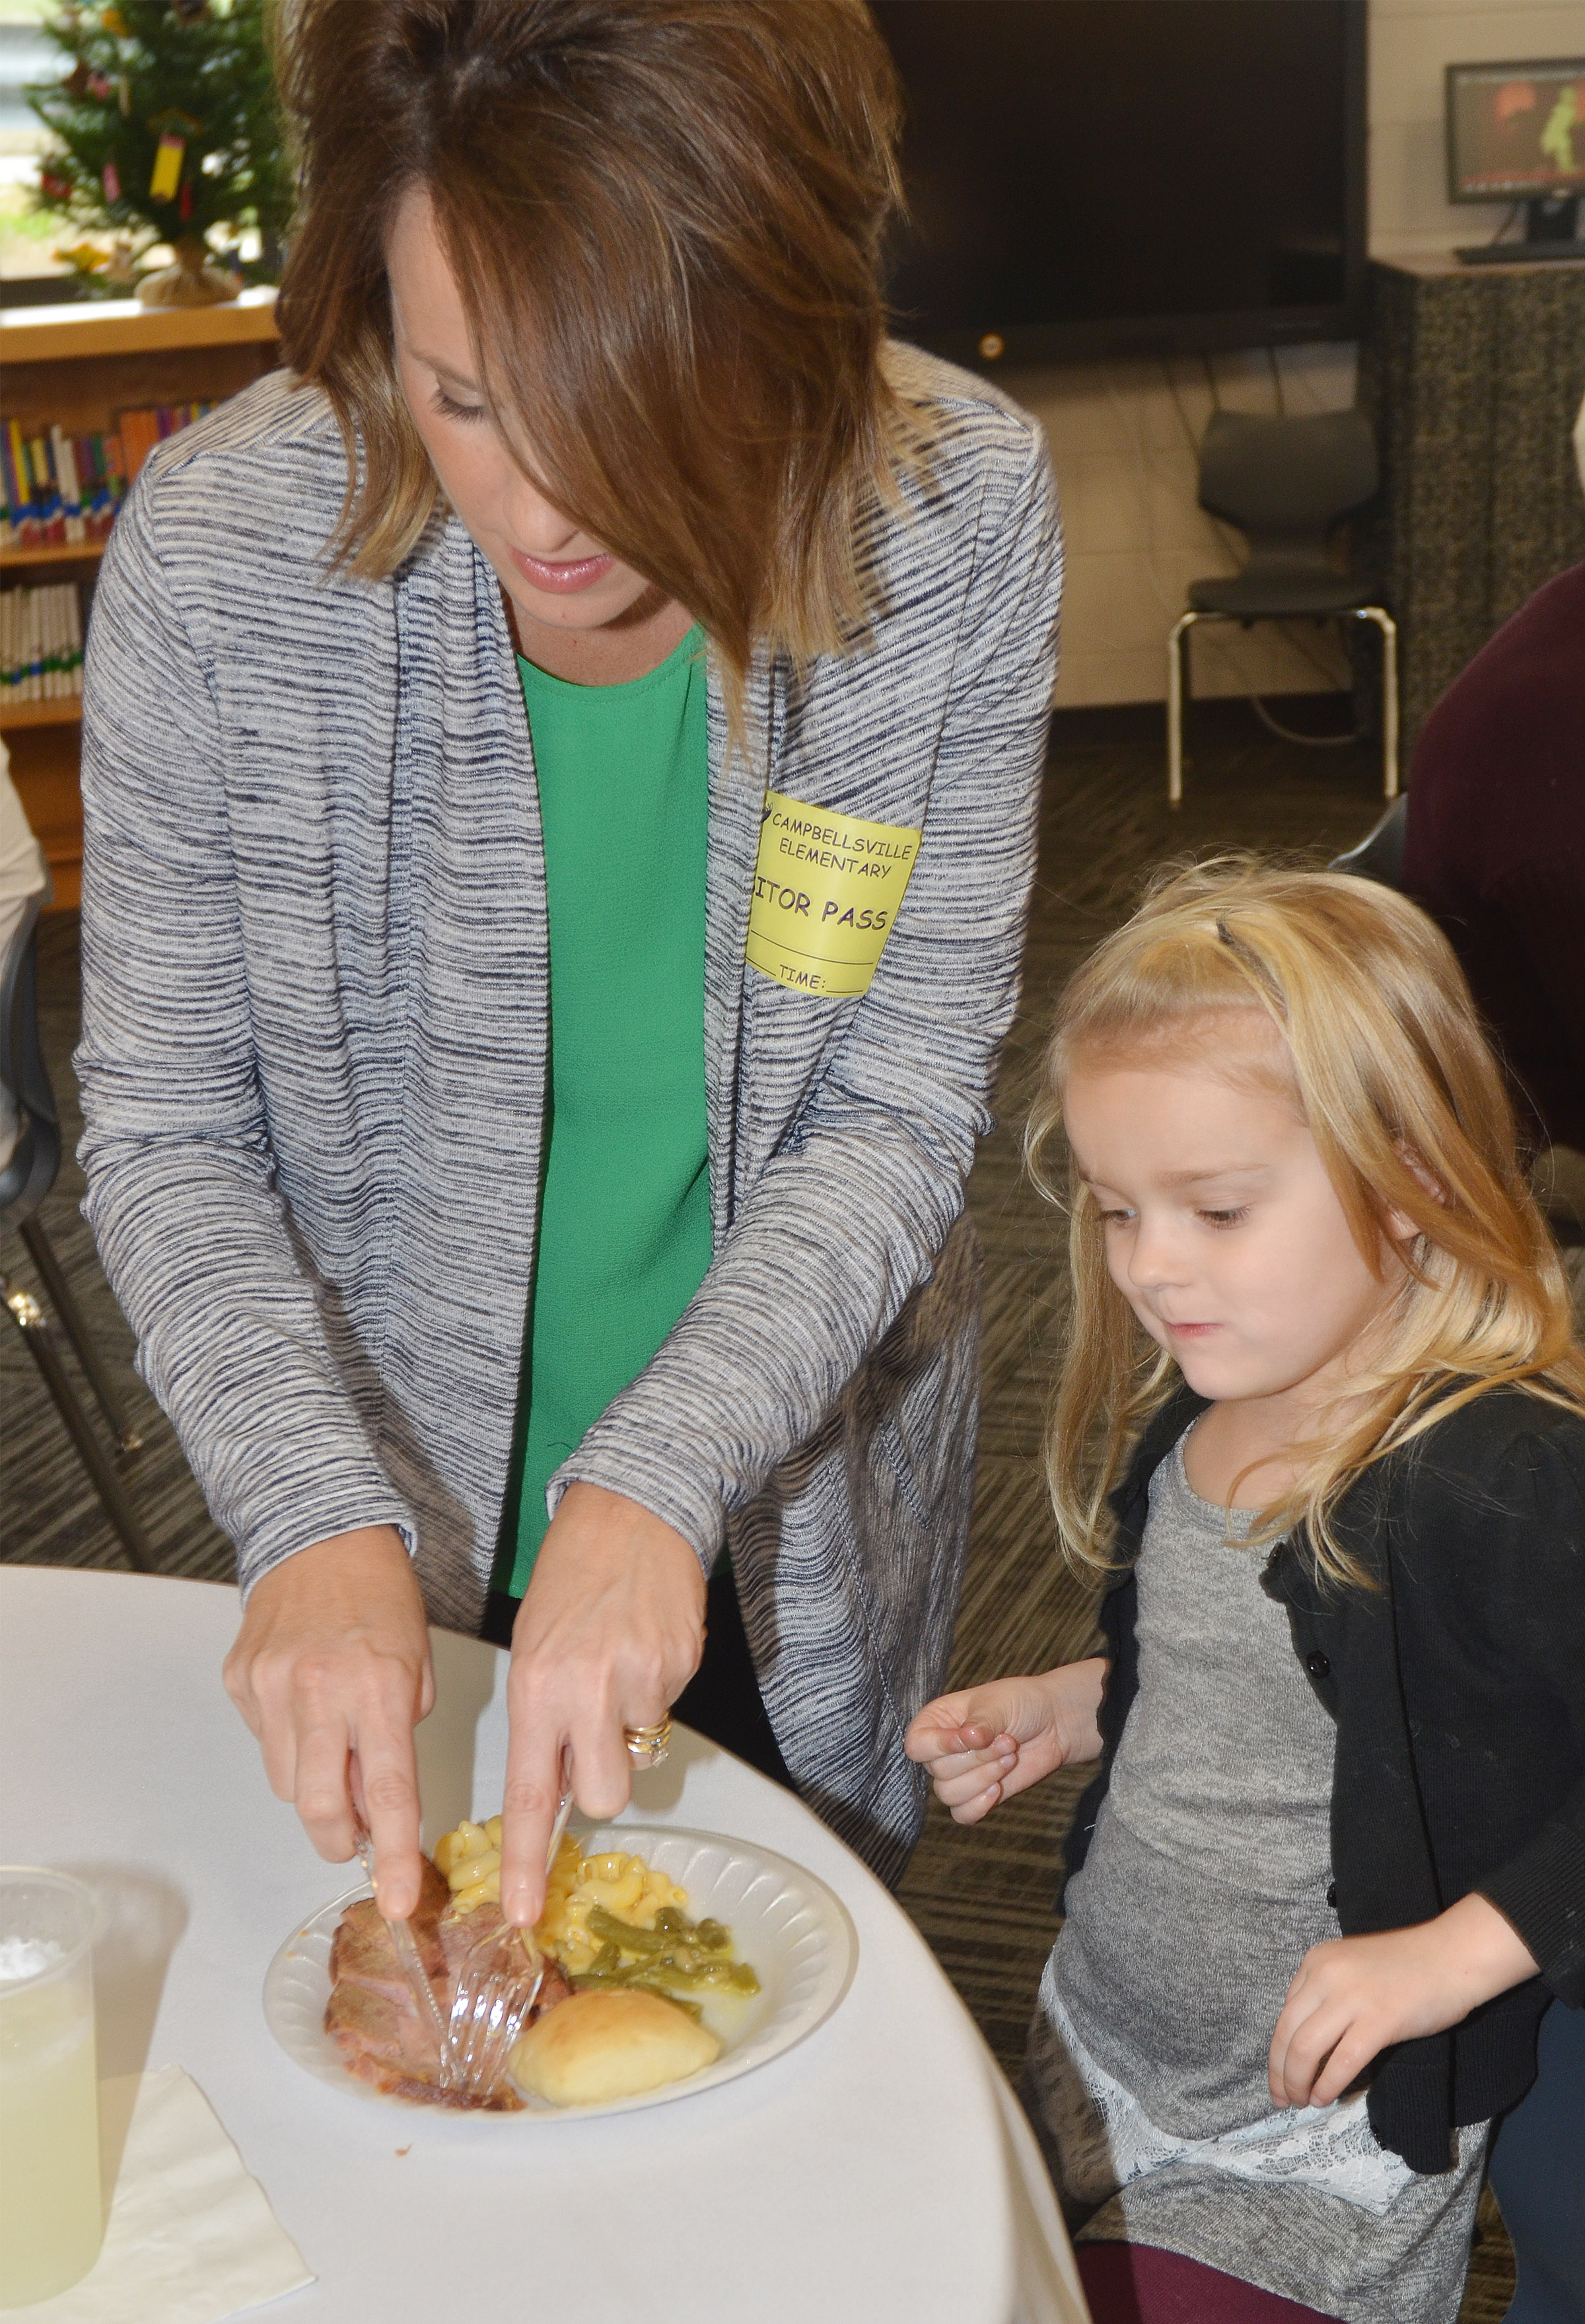 Paige Hord, owner of The Green Room, cuts kindergartener Miley Orberson's meat.